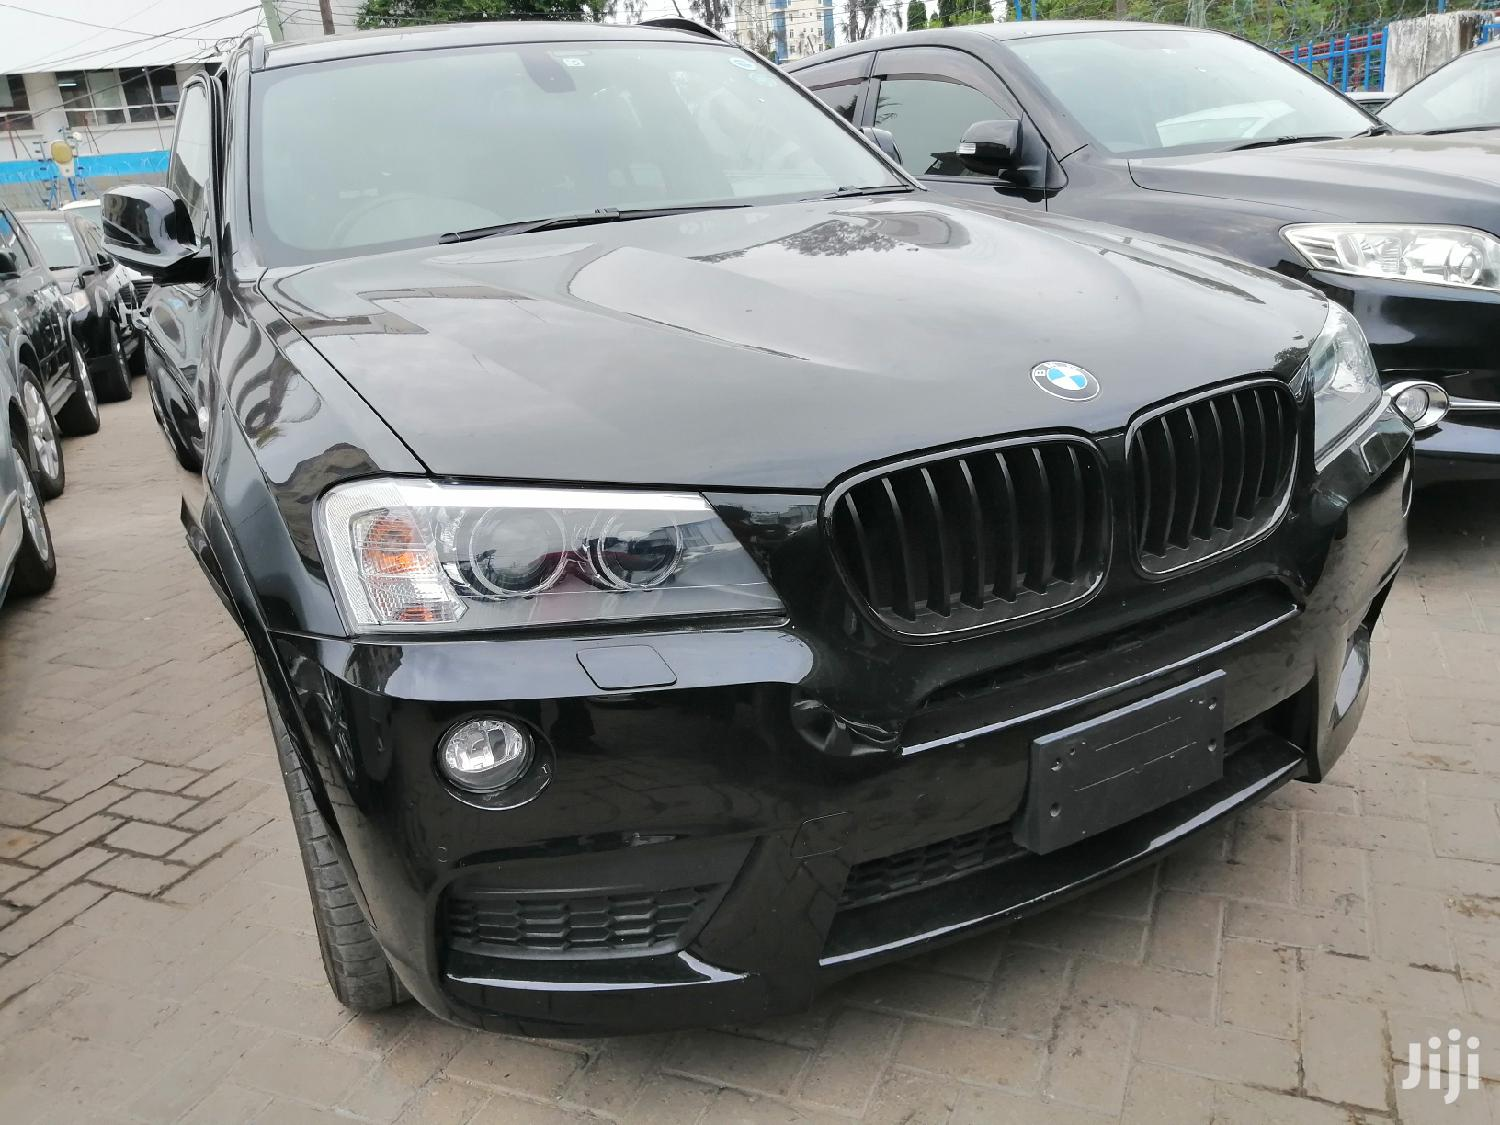 Archive Bmw X3 2012 Black In Mvita Cars Eric Kallua Jiji Co Ke